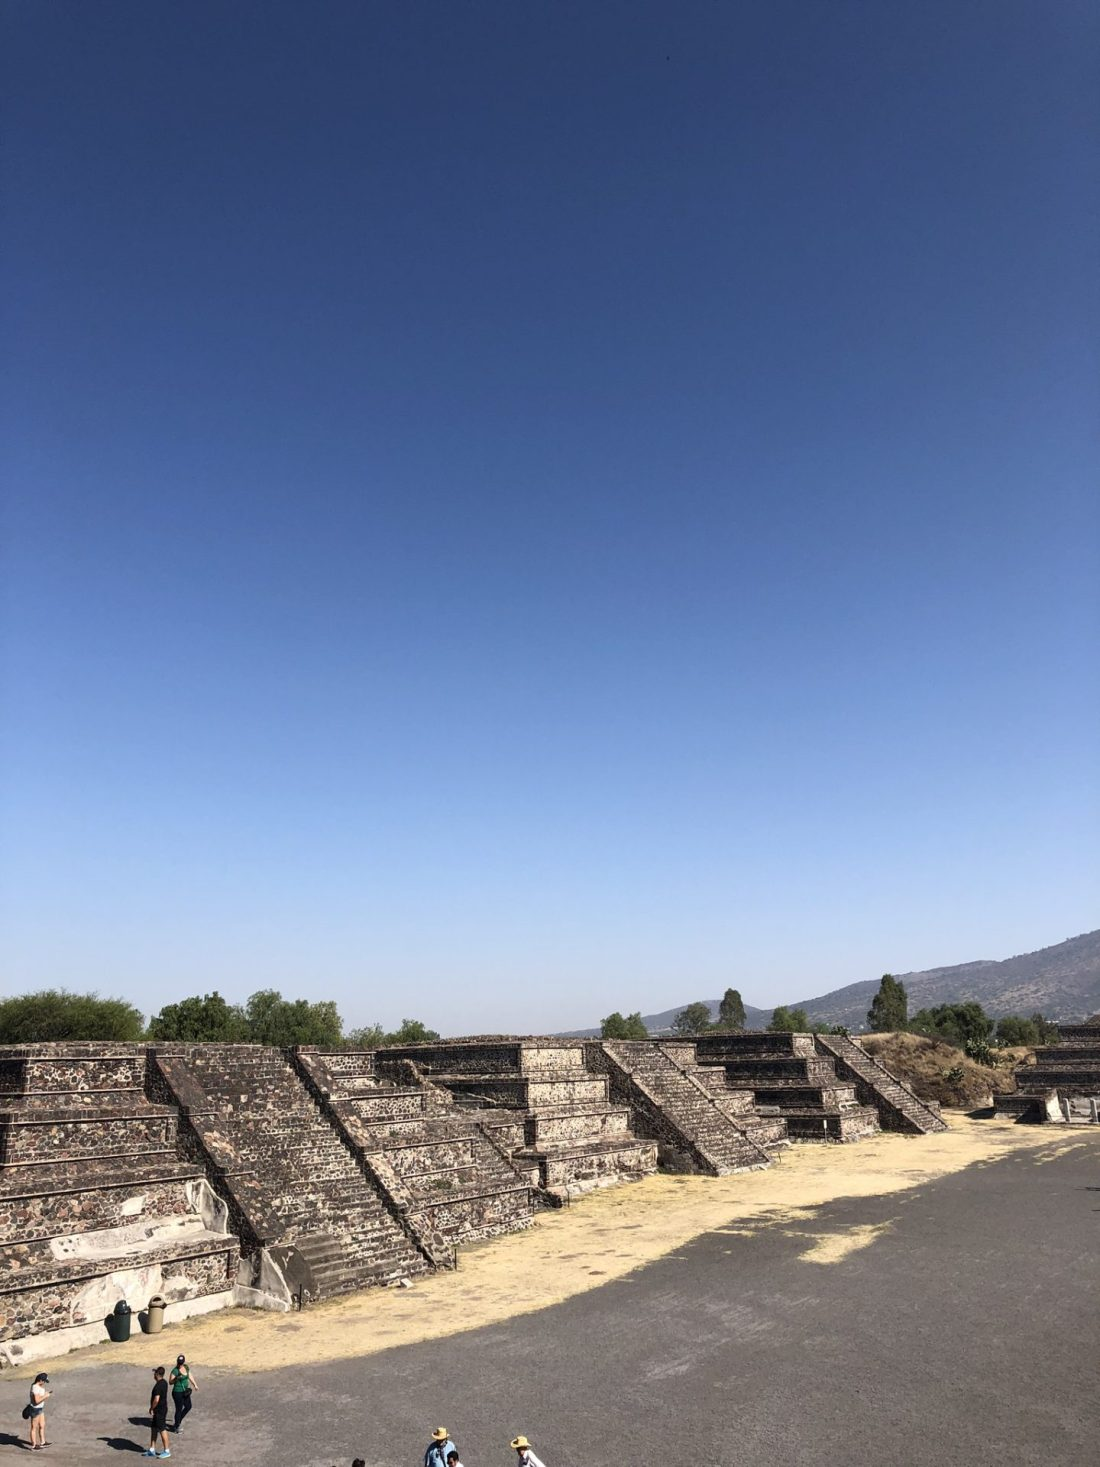 Mayan ruins at Teotihuacan, Mexico